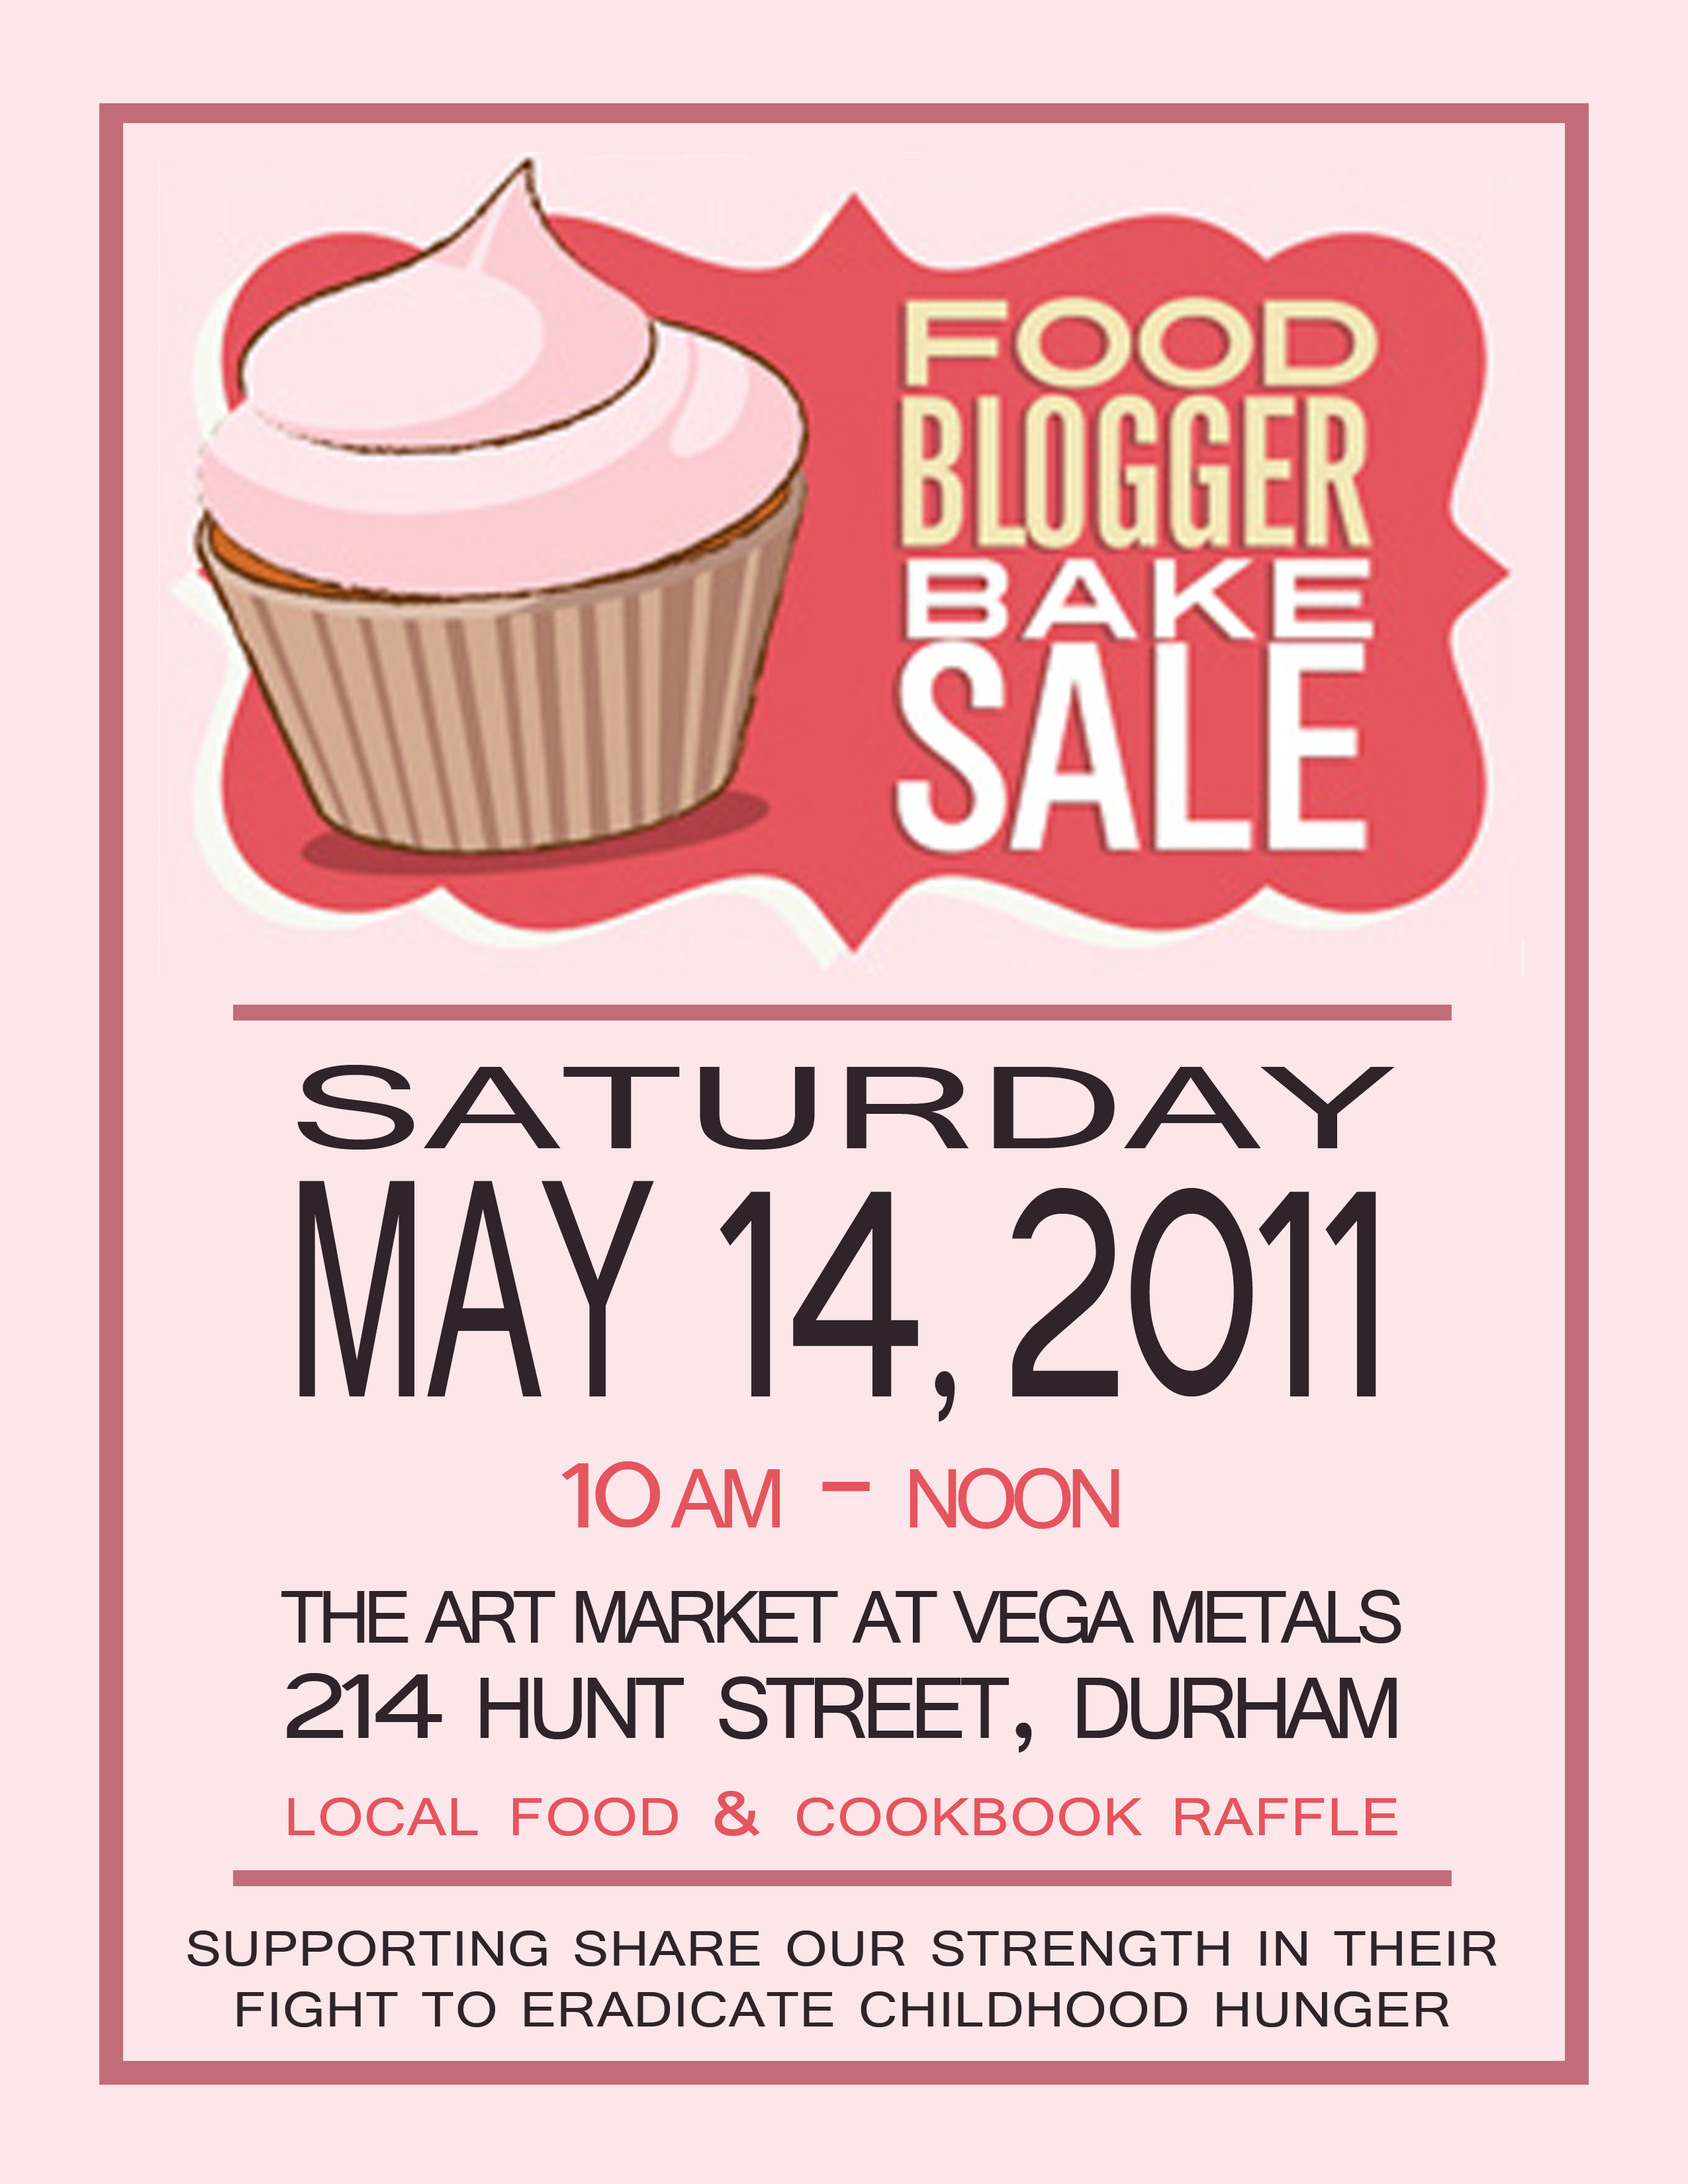 Sample Bake Sale Flyers http://johannakramer.com/2011/05/